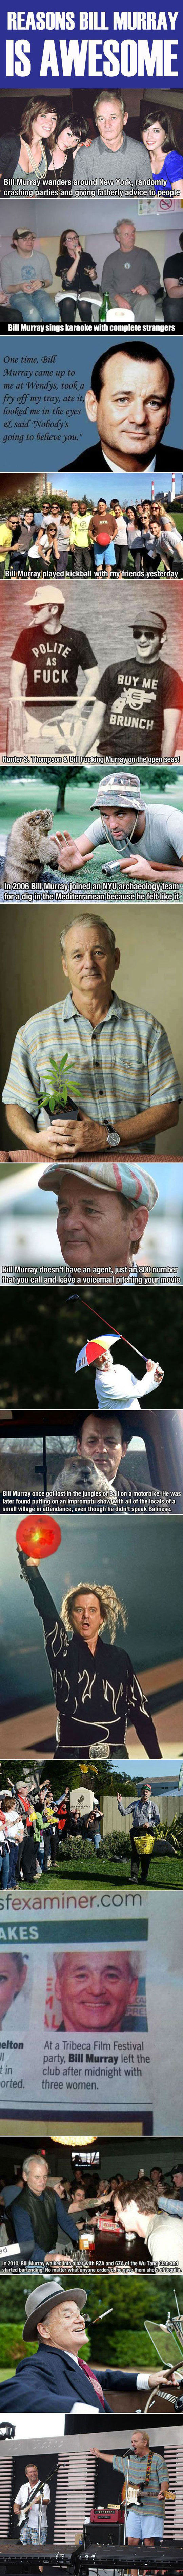 reasons-Bill-Murray-awesome